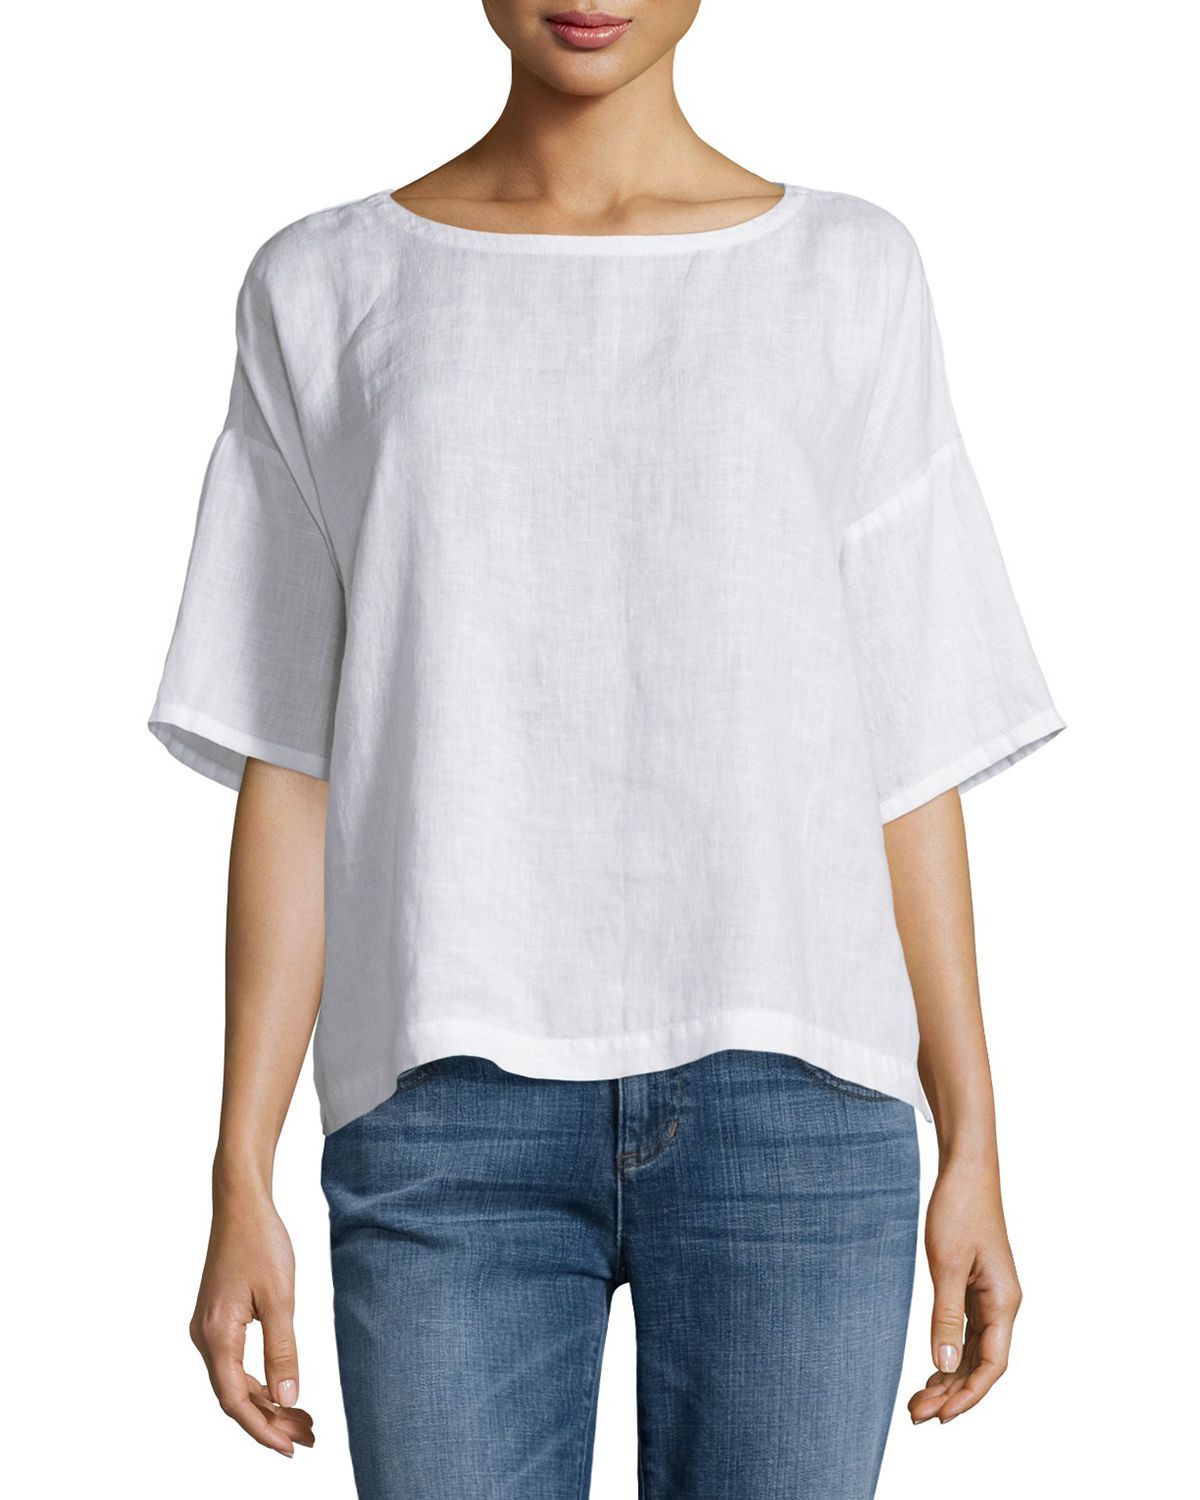 Eileen Fisher handkerchief linen top, available in your choice of ...